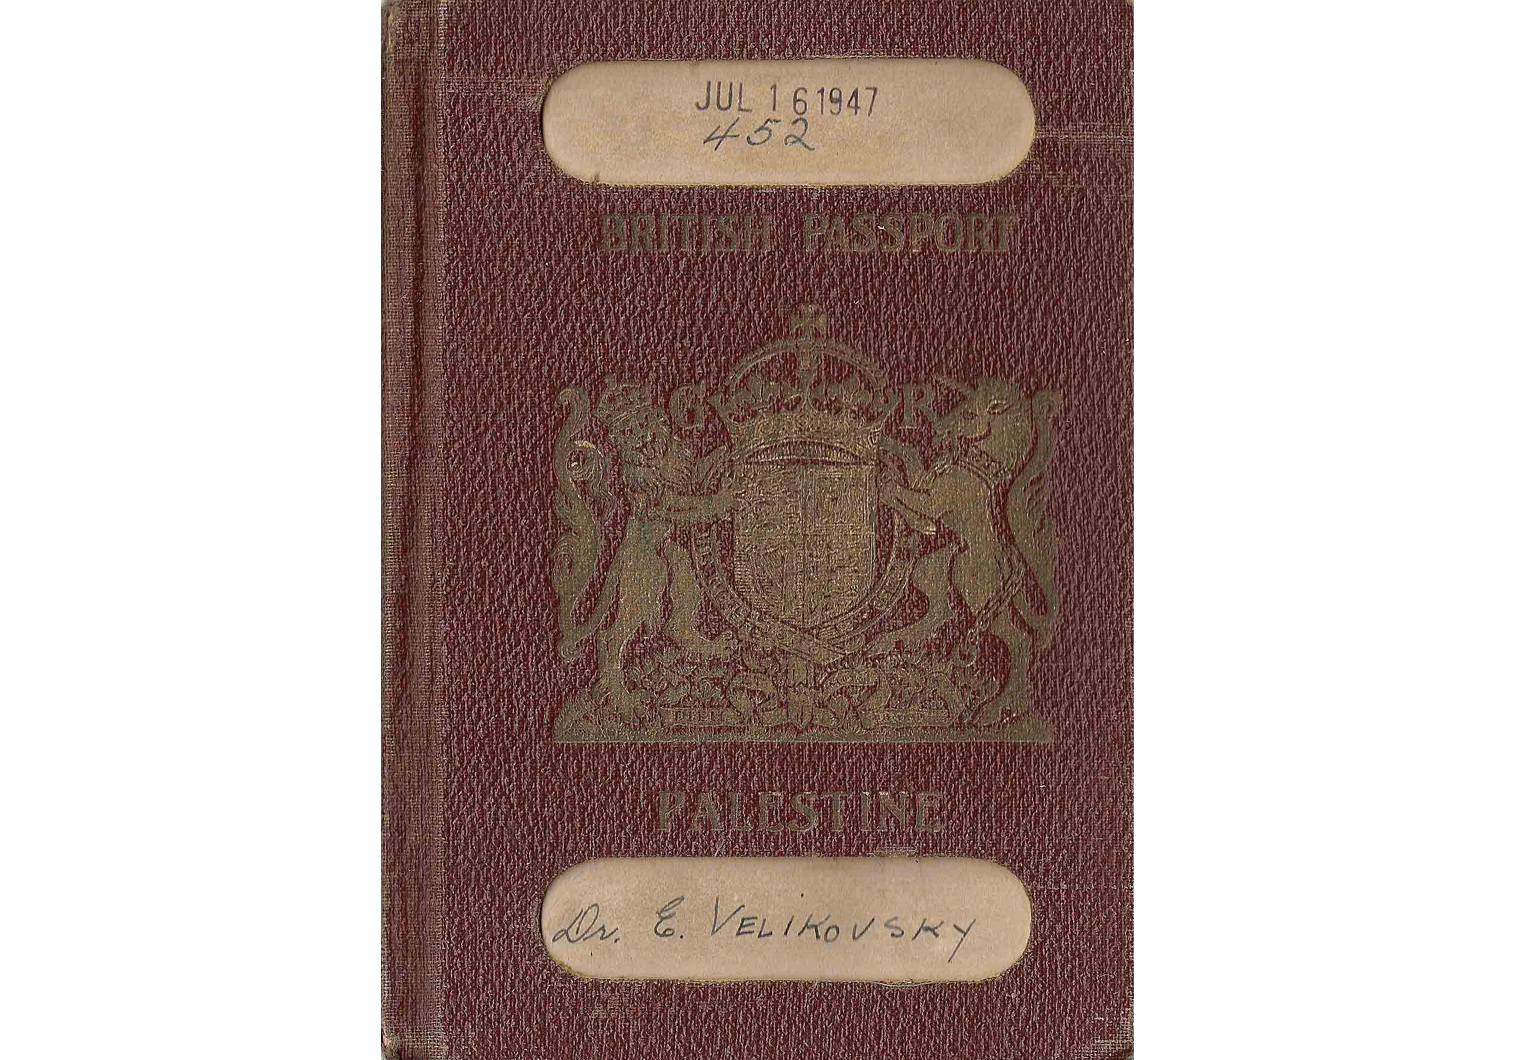 """Worlds in Collision"" authors' passport"